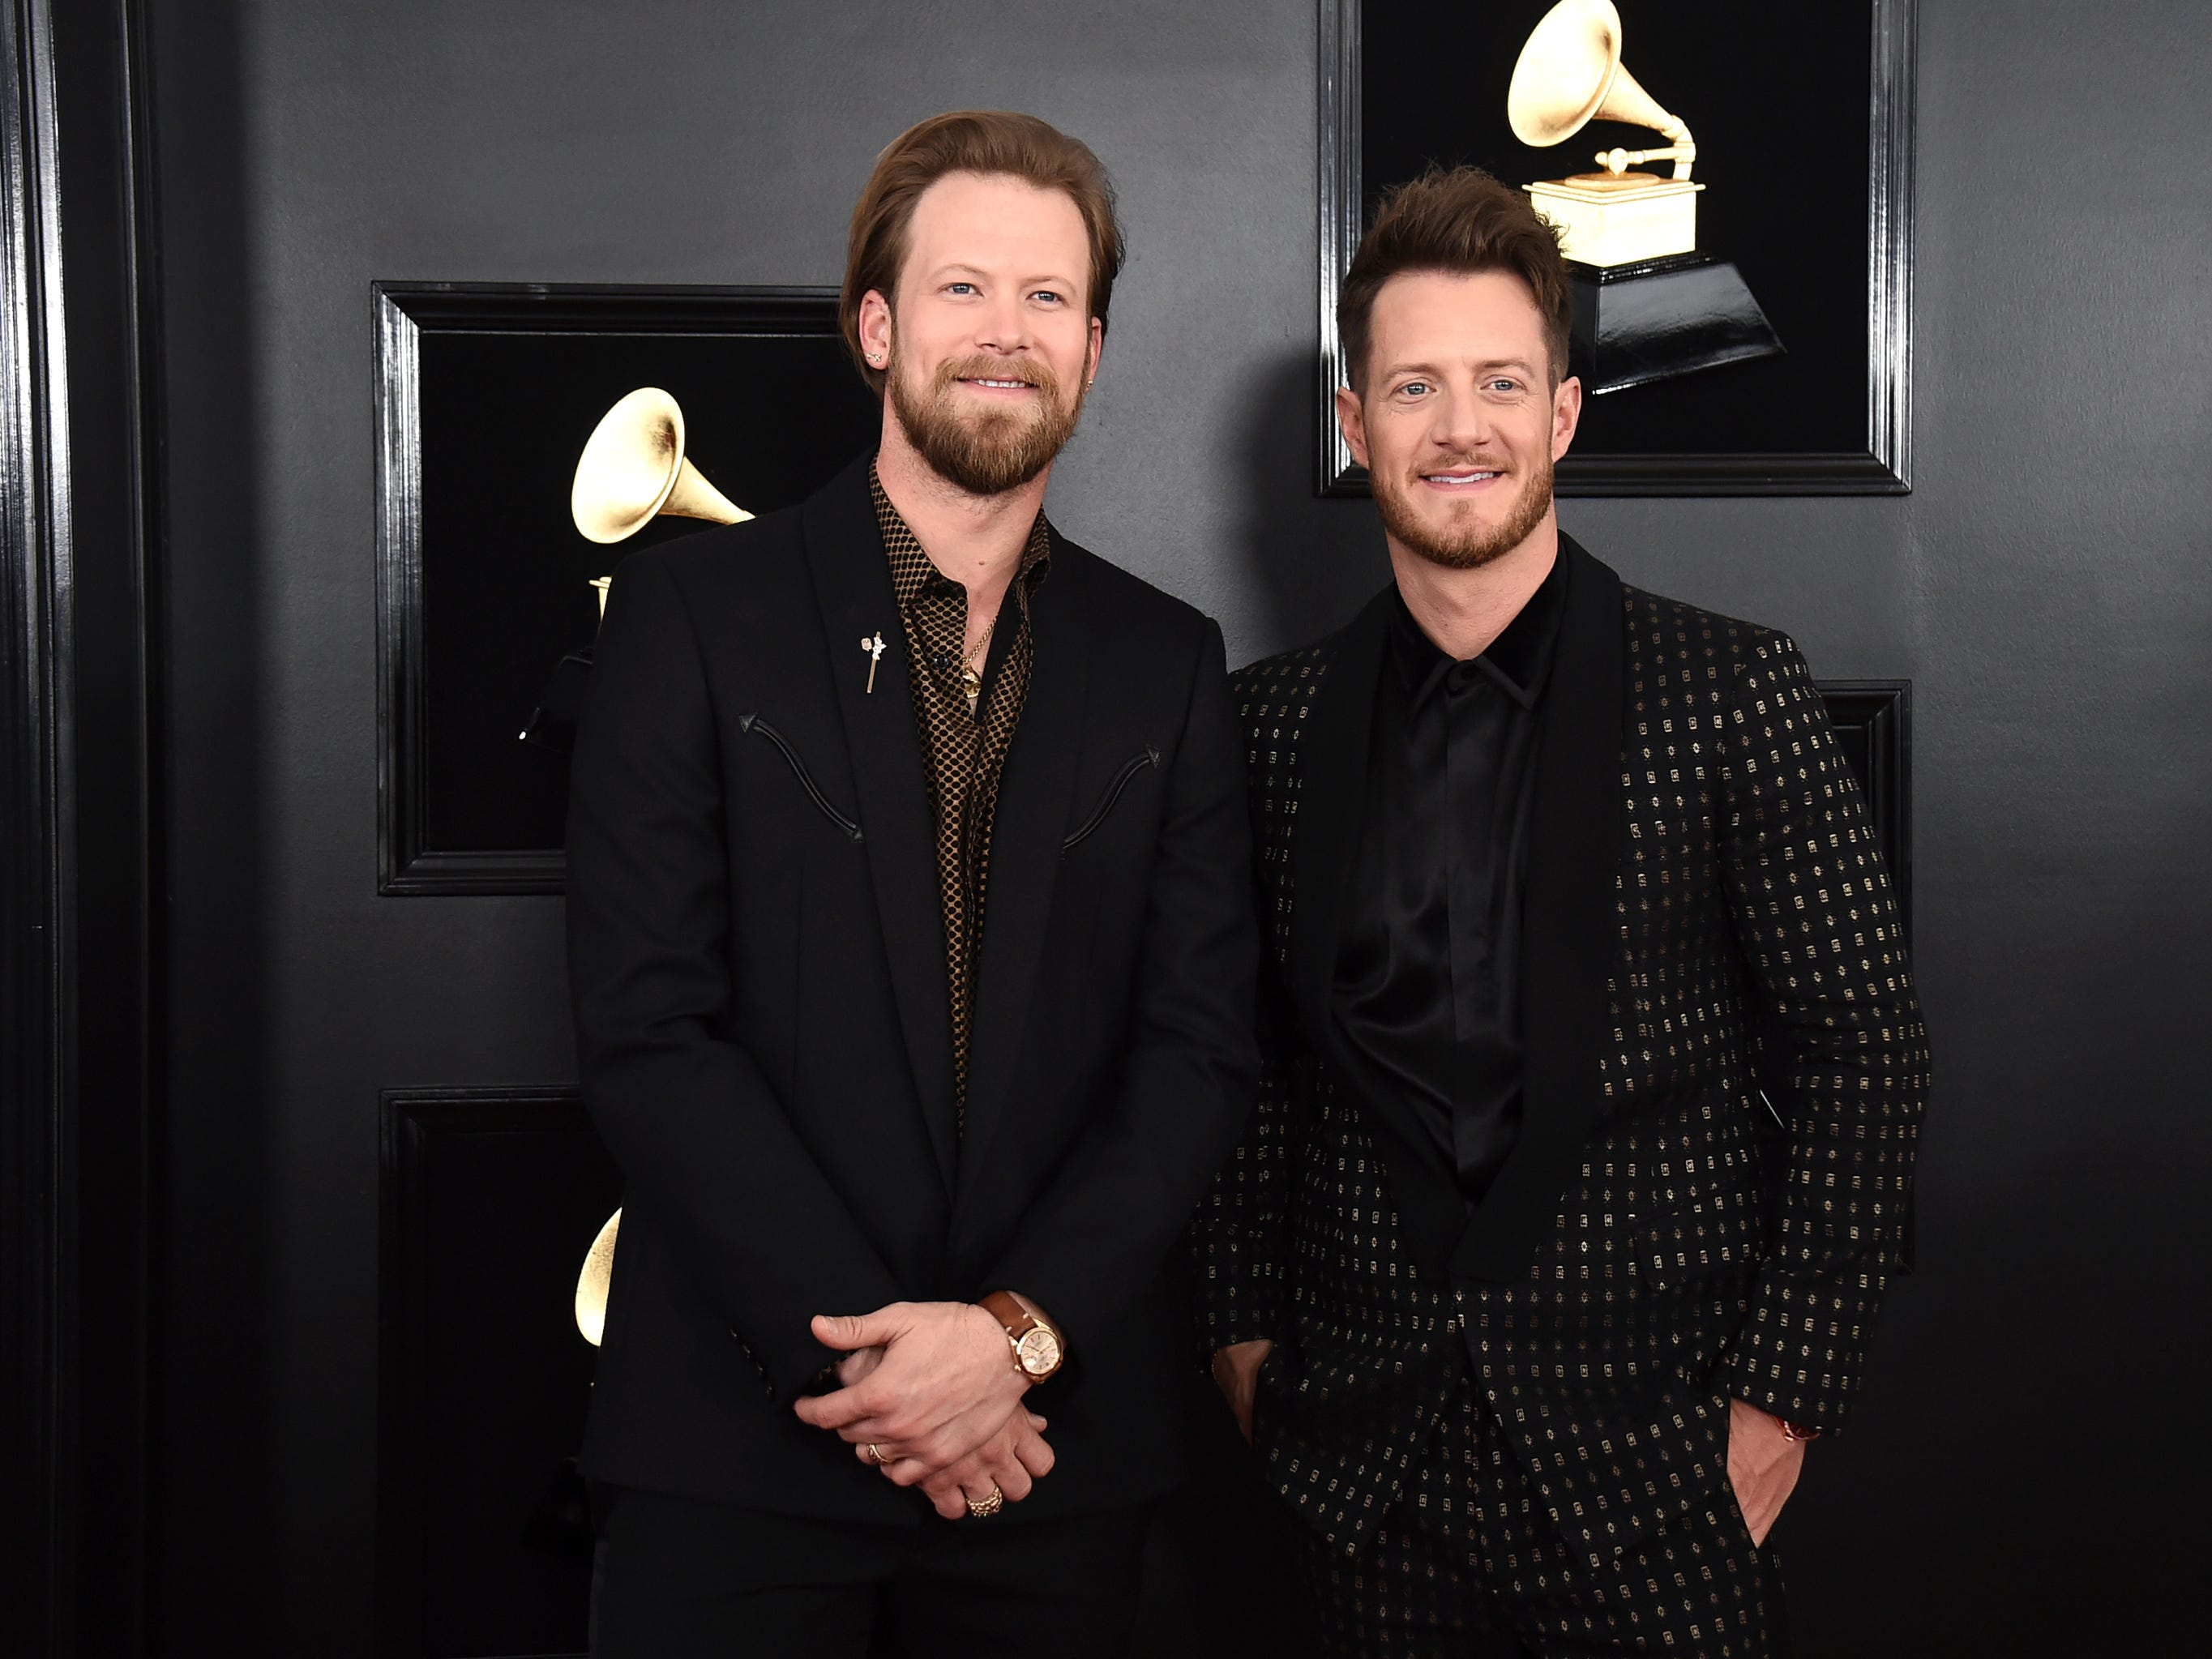 Brian Kelley, left, and Tyler Hubbard of Florida Georgia Line arrive at the 61st annual Grammy Awards at the Staples Center on Sunday, Feb. 10, 2019, in Los Angeles.